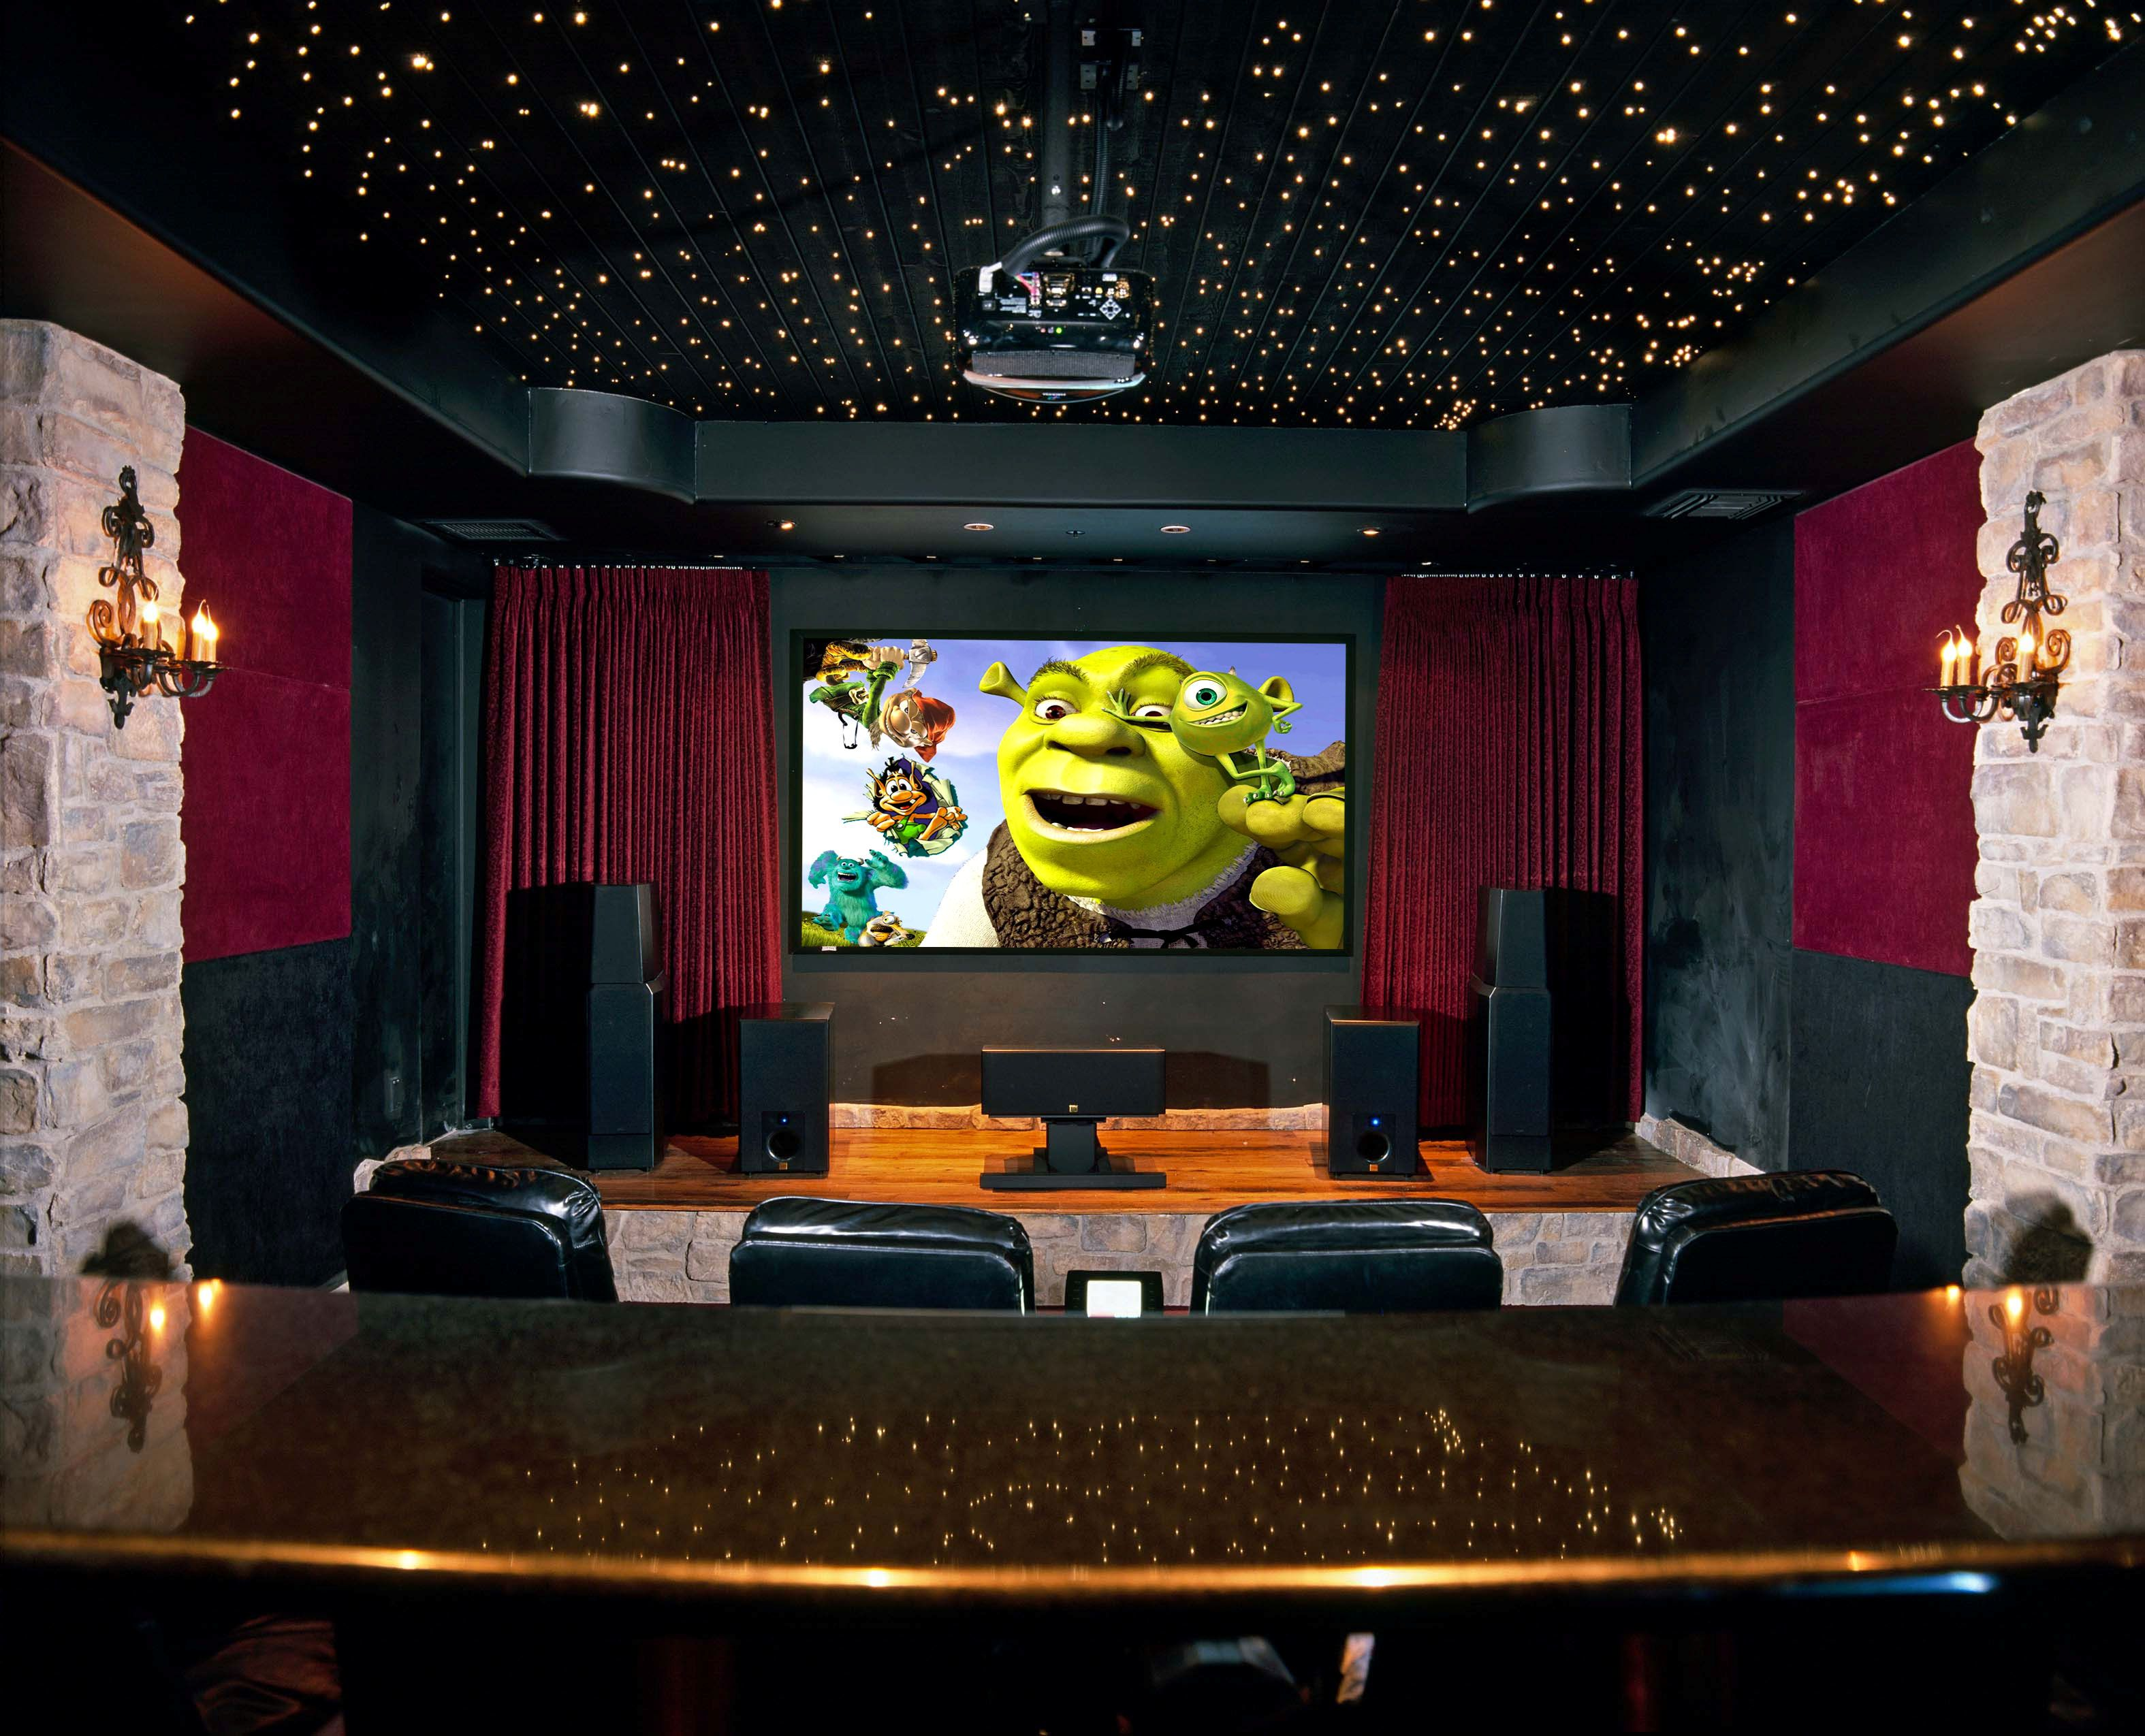 Decorating Beautiful Home Theater Room With Ceiling Design Full Of Stars And Black Leather Seats Ideas Also Sound Amazing